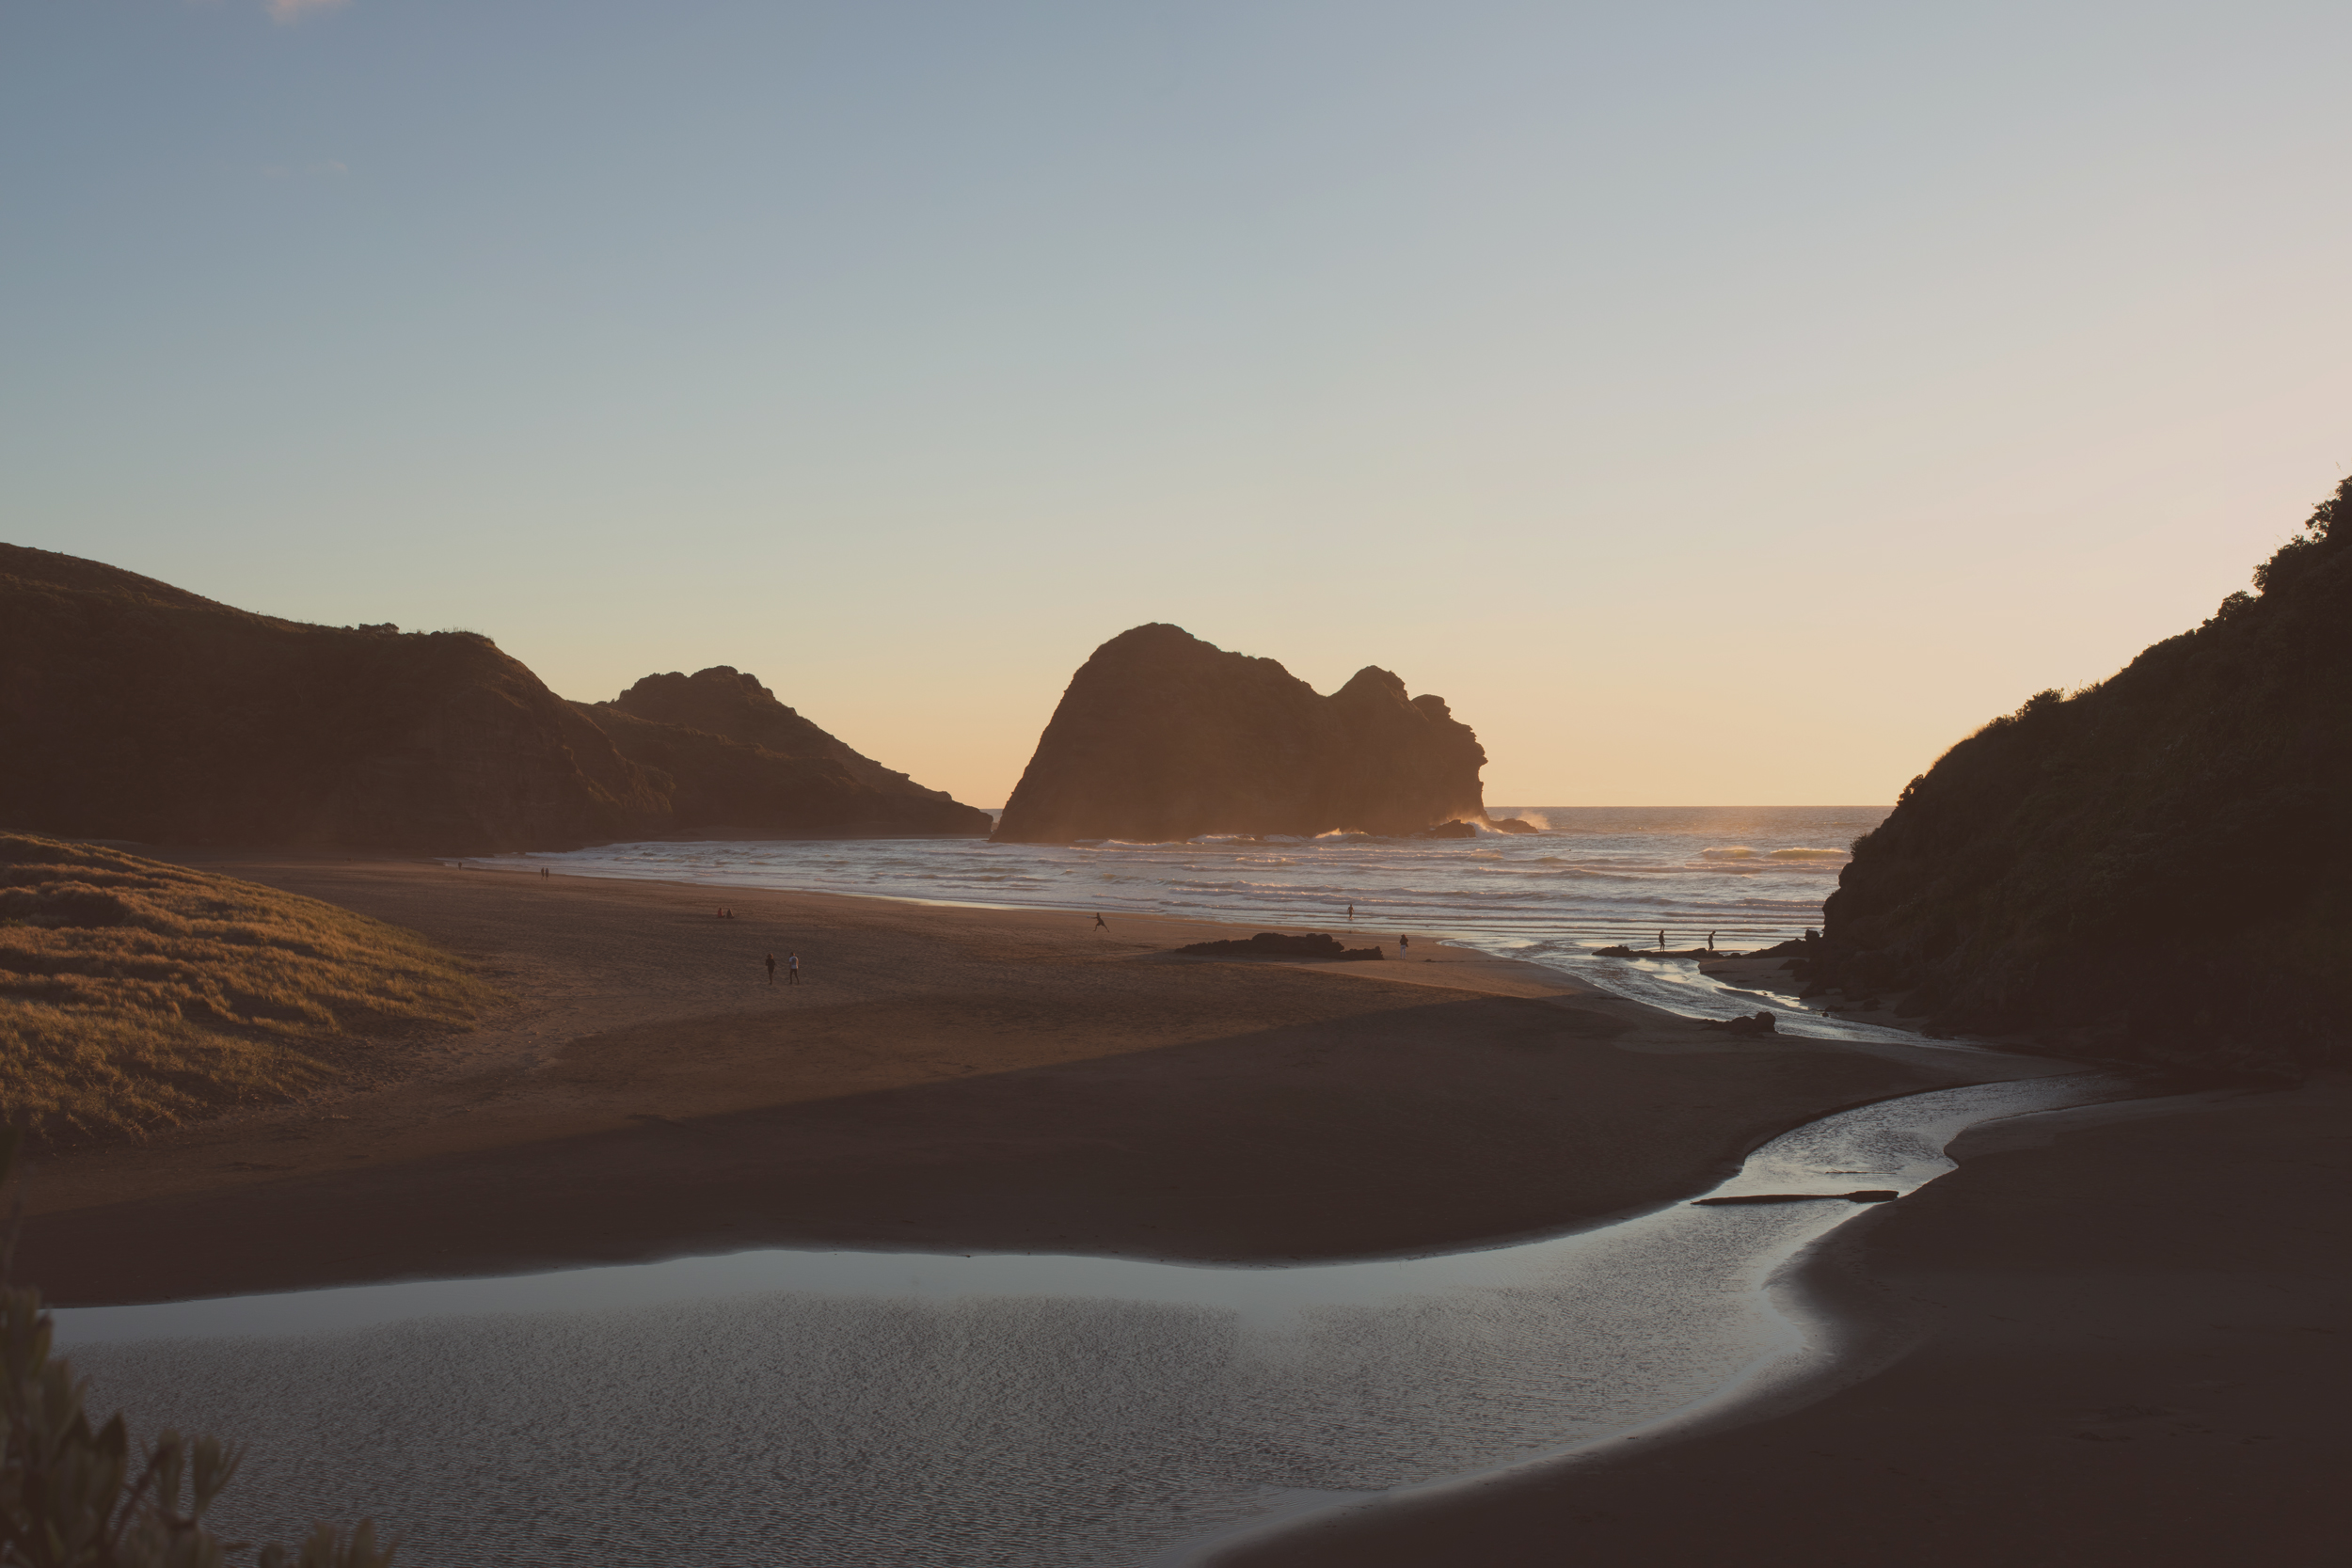 PIHA_SOUTH_V3_Warm.jpg